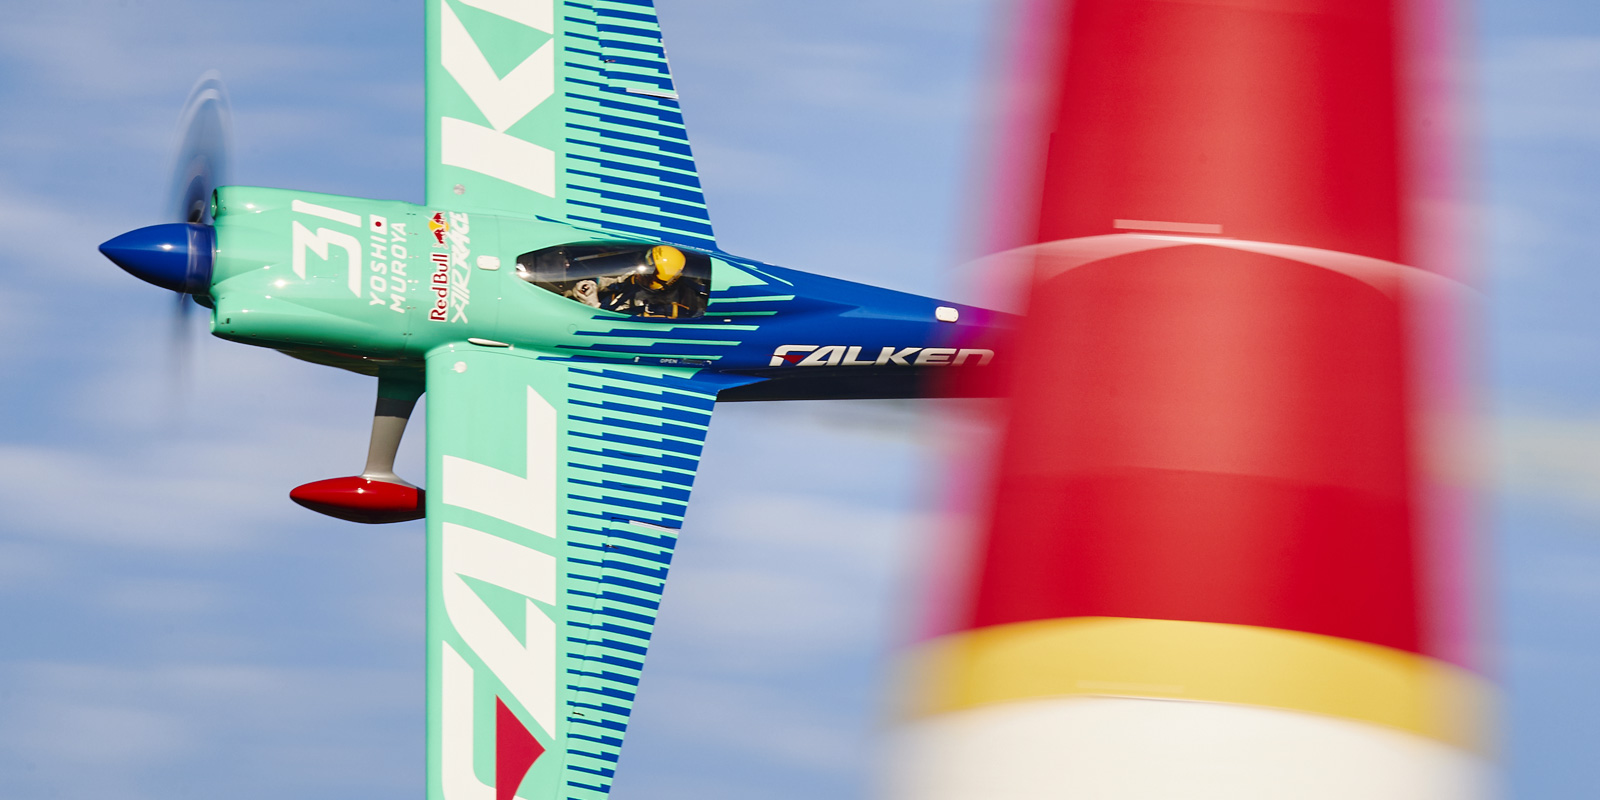 Red Bull Air Race Indianapolis Event Schedule